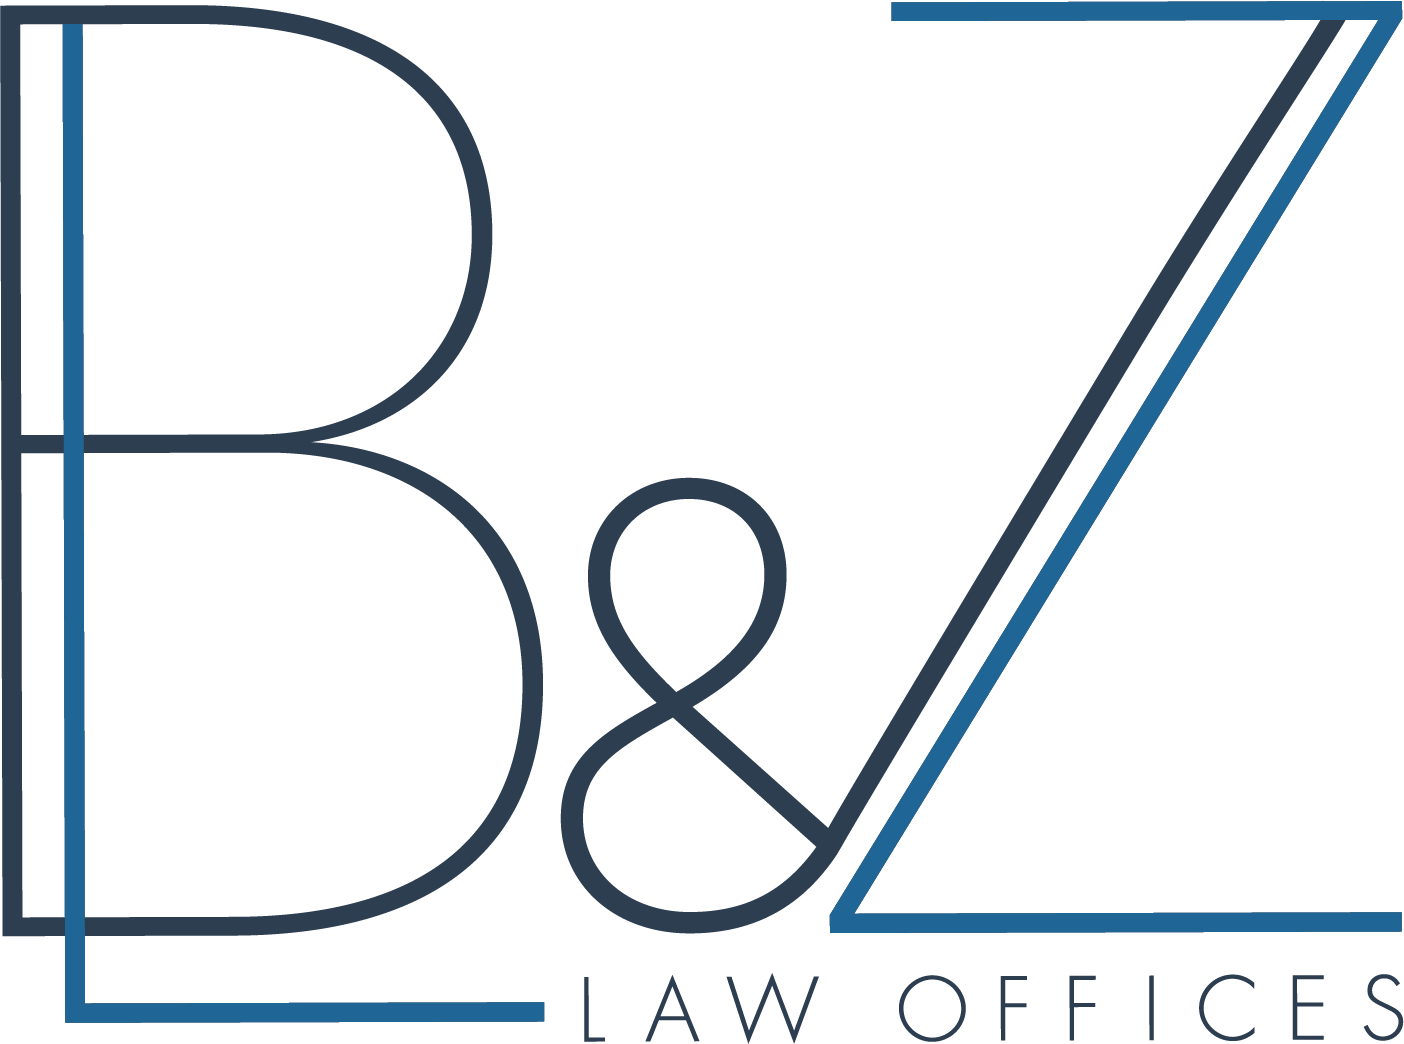 BL&Z Law Offices & Notary